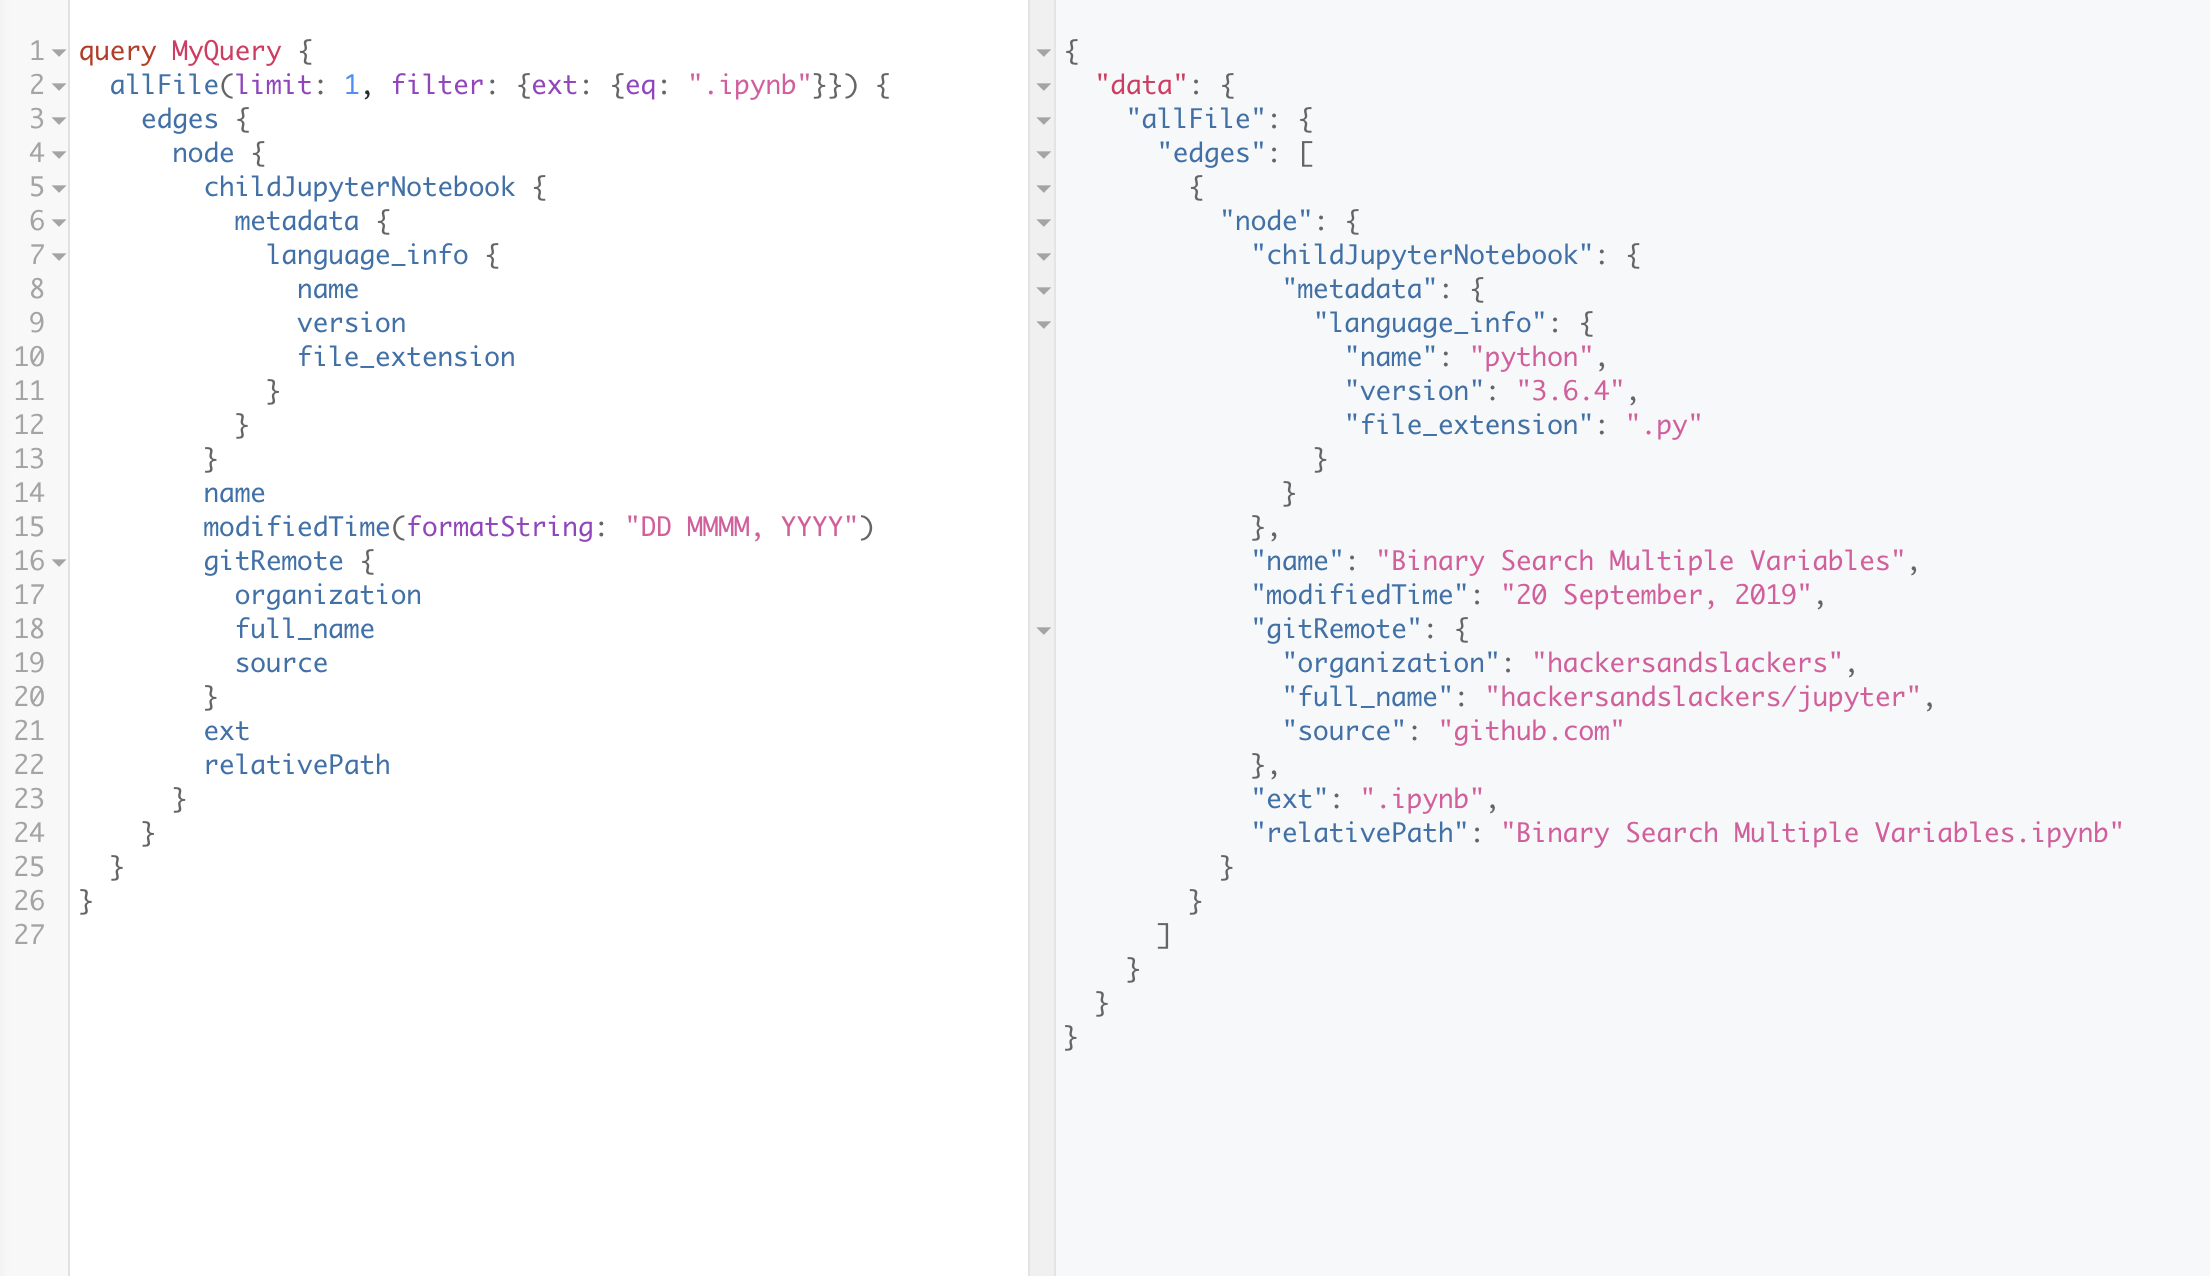 A GraphQL query pulling .ipynb files from Github